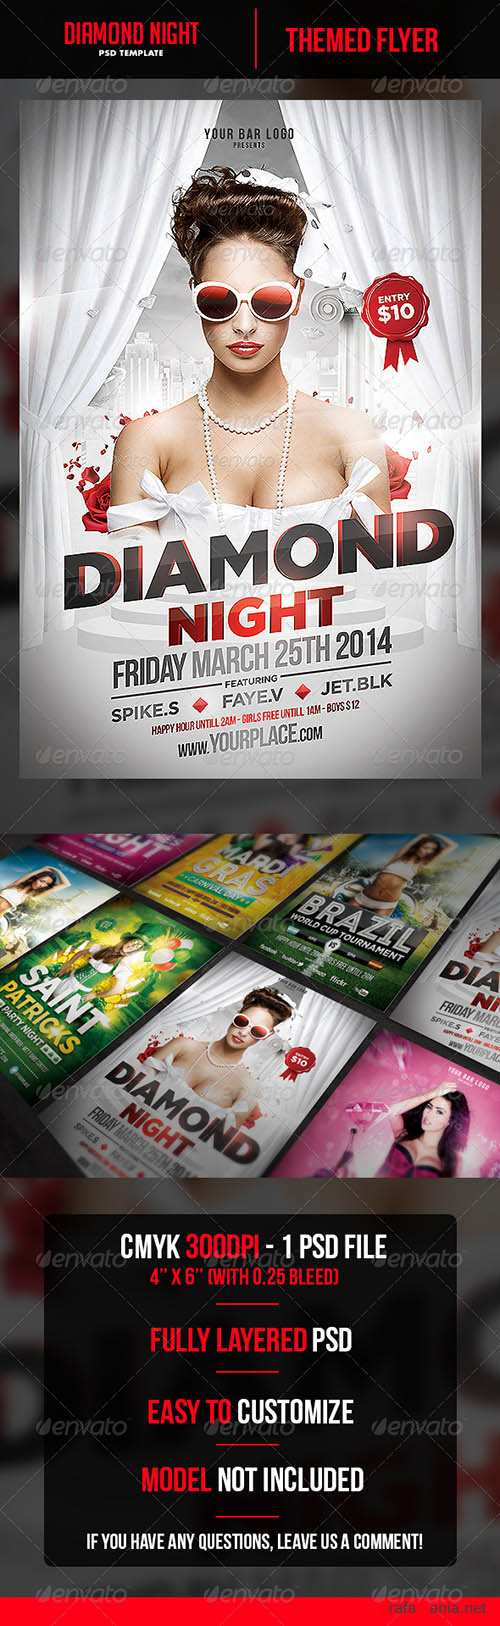 Diamond Night Flyer Template 6800627